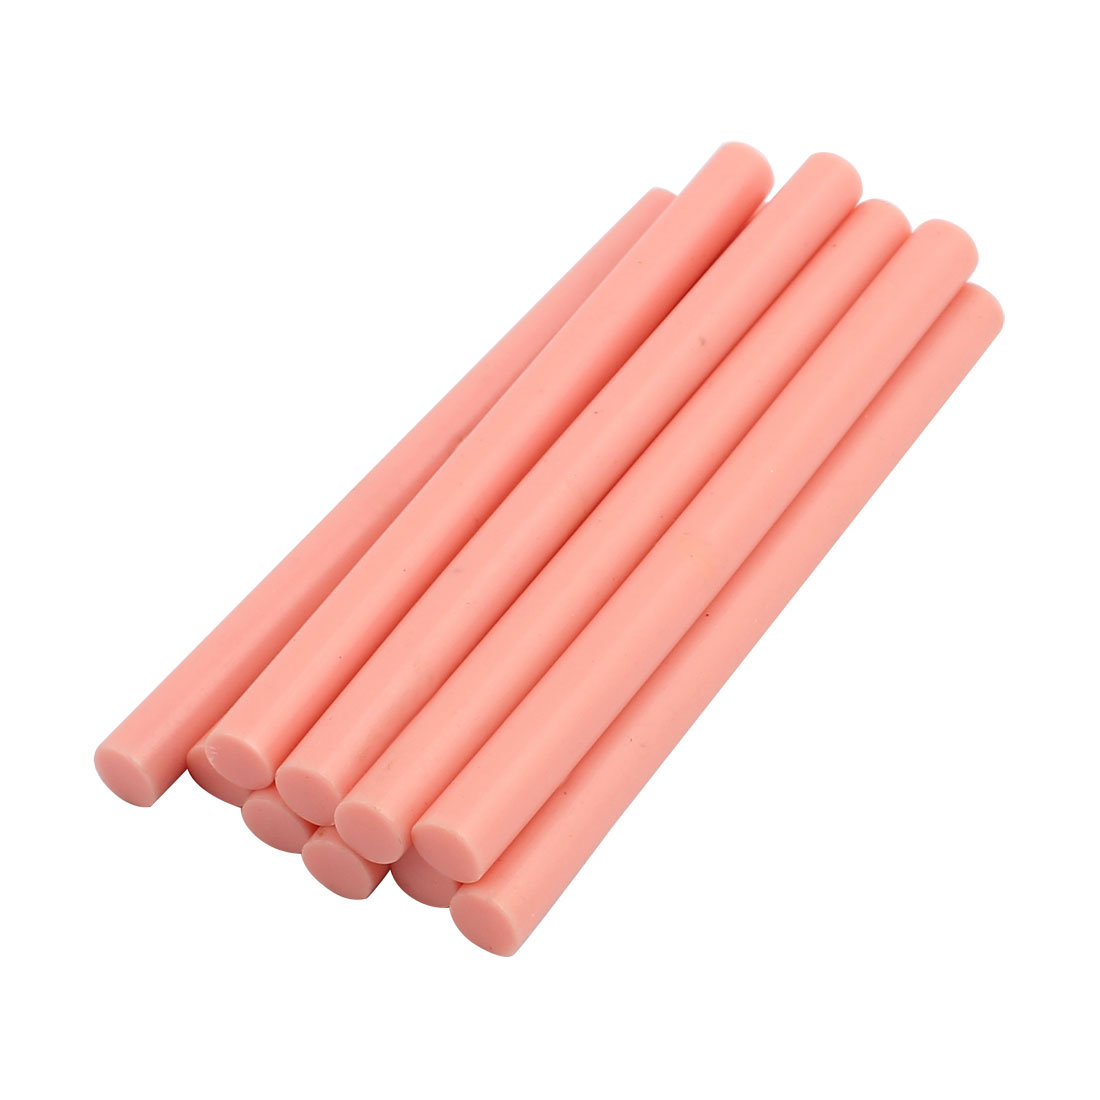 Unique Bargains10 Pcs Light Pink 7mm Dia Soldering Iron Hot Melt Glue Stick 100mm Length